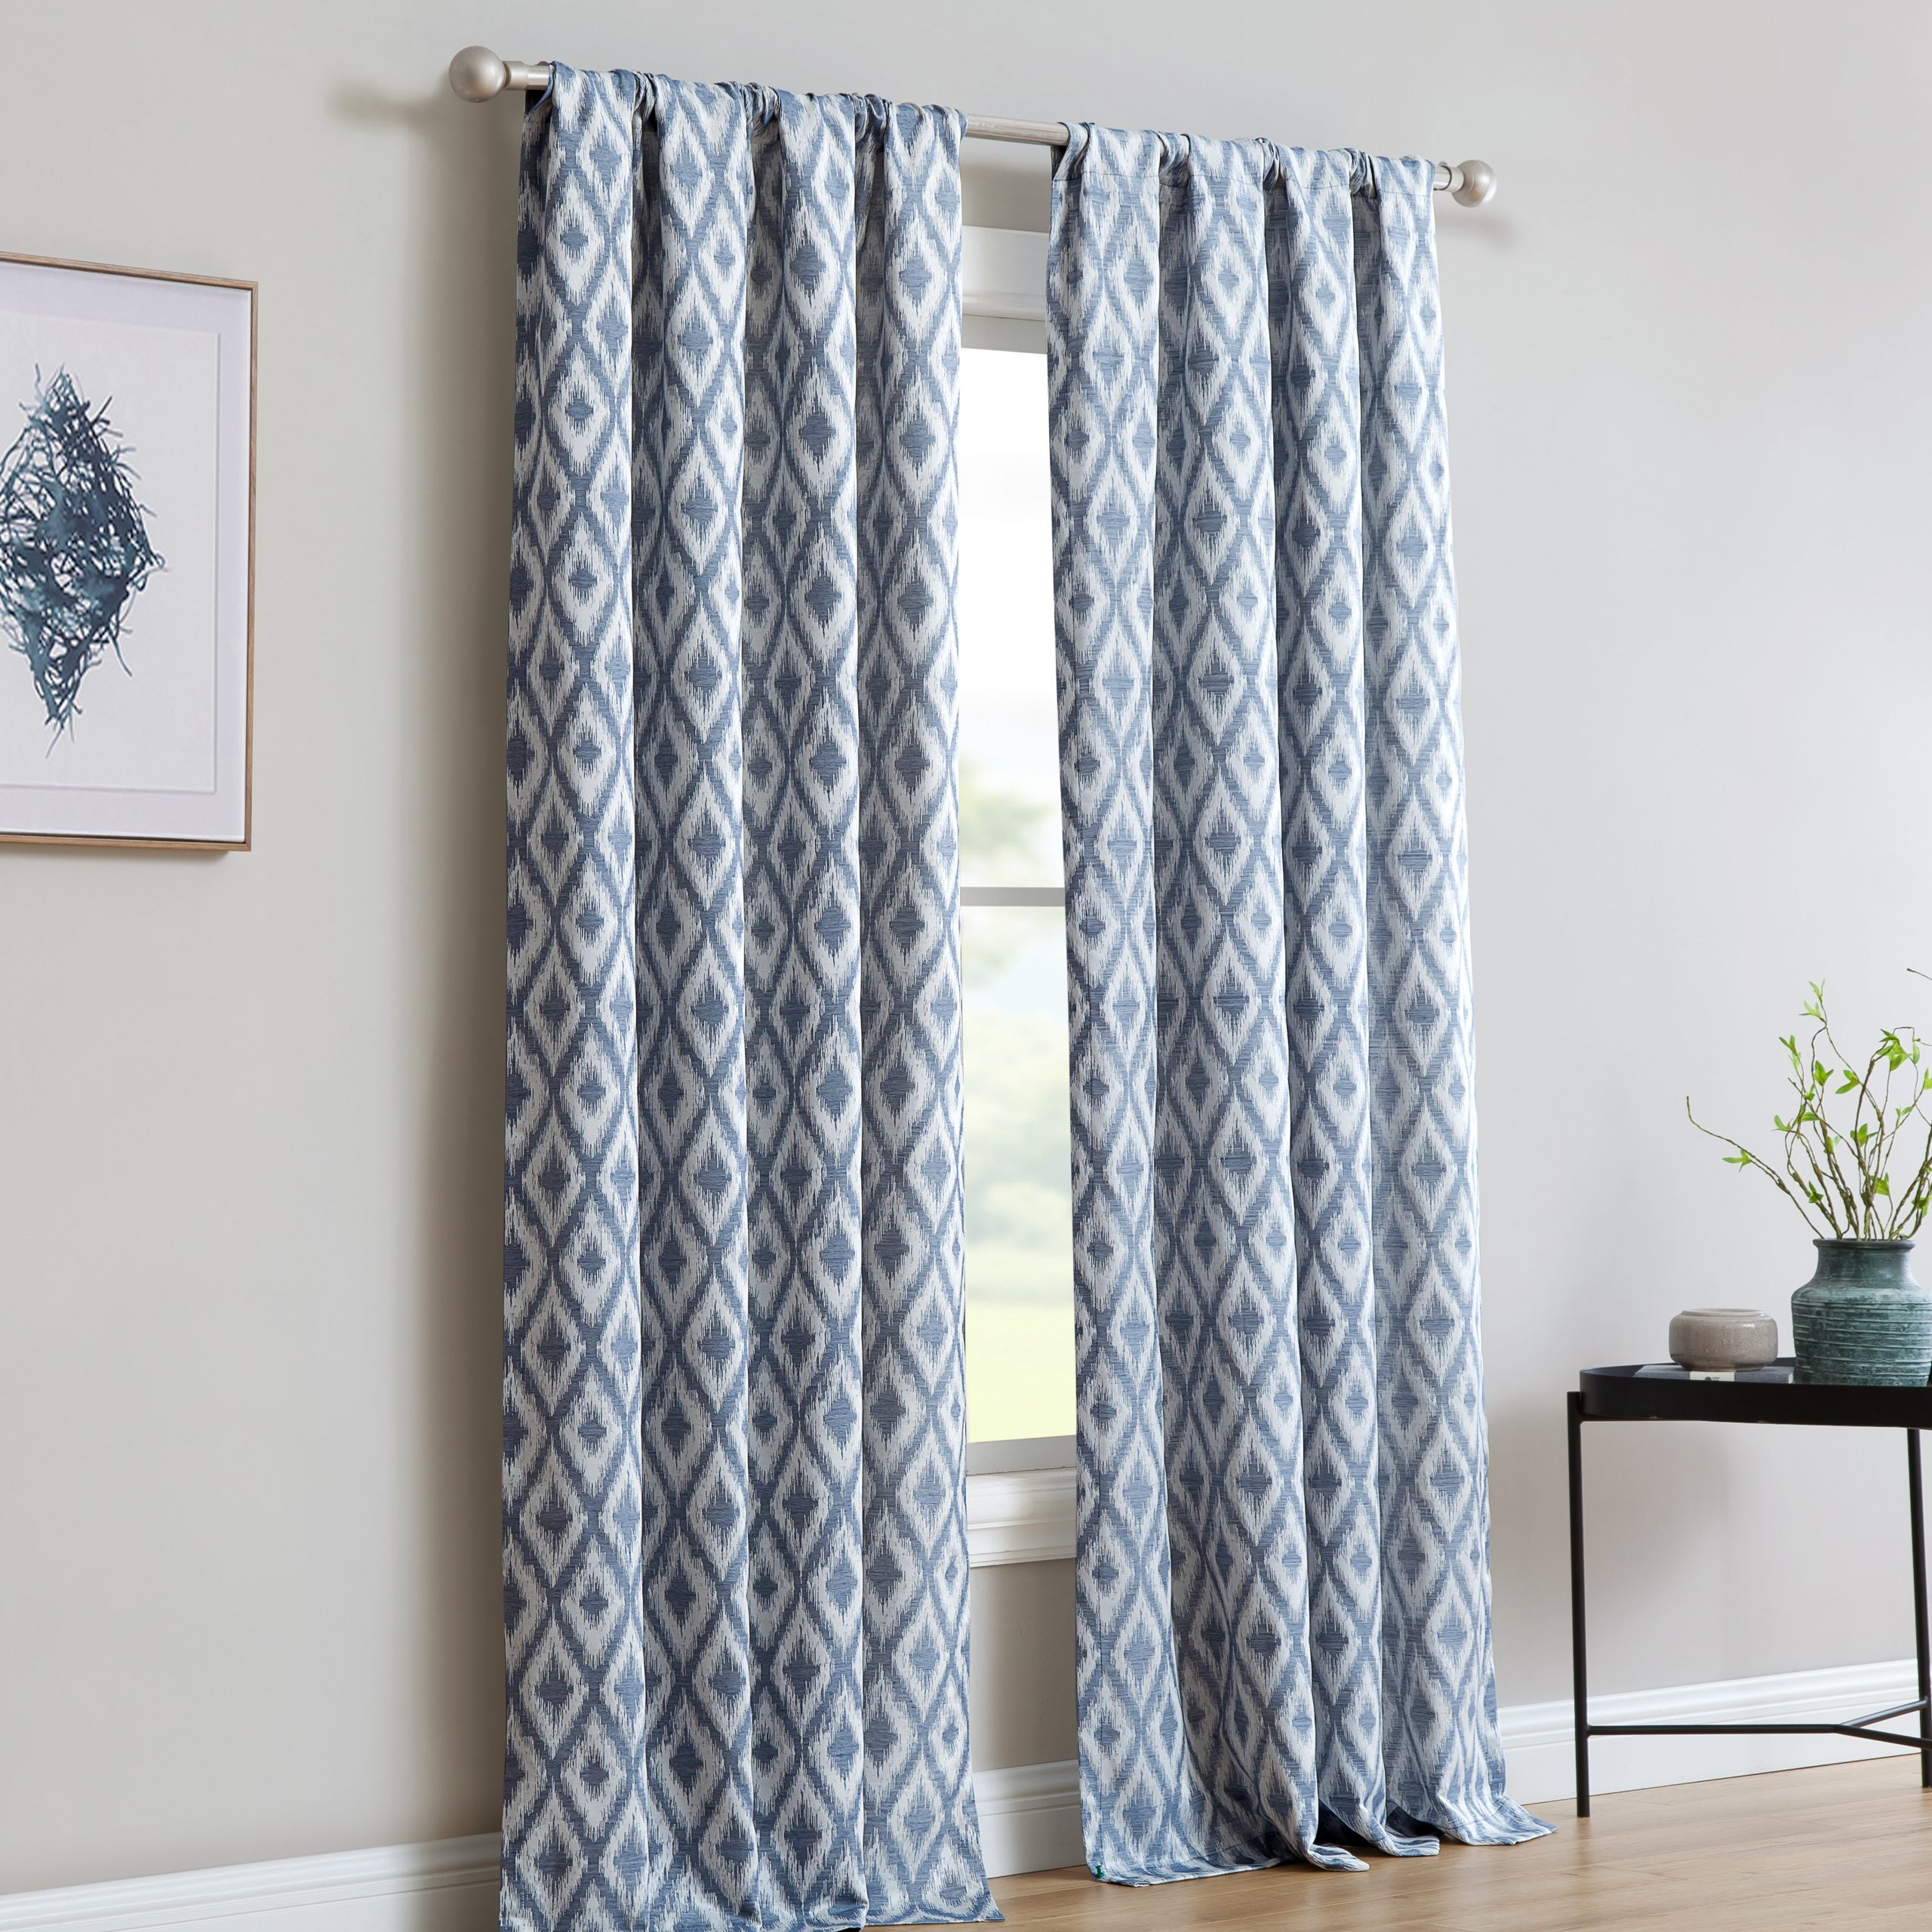 Most Recent Pottorff Jacquard Window With Ikat Room Darkening Rod Pocket Single Curtain Panel Intended For Ikat Blue Printed Cotton Curtain Panels (View 19 of 20)